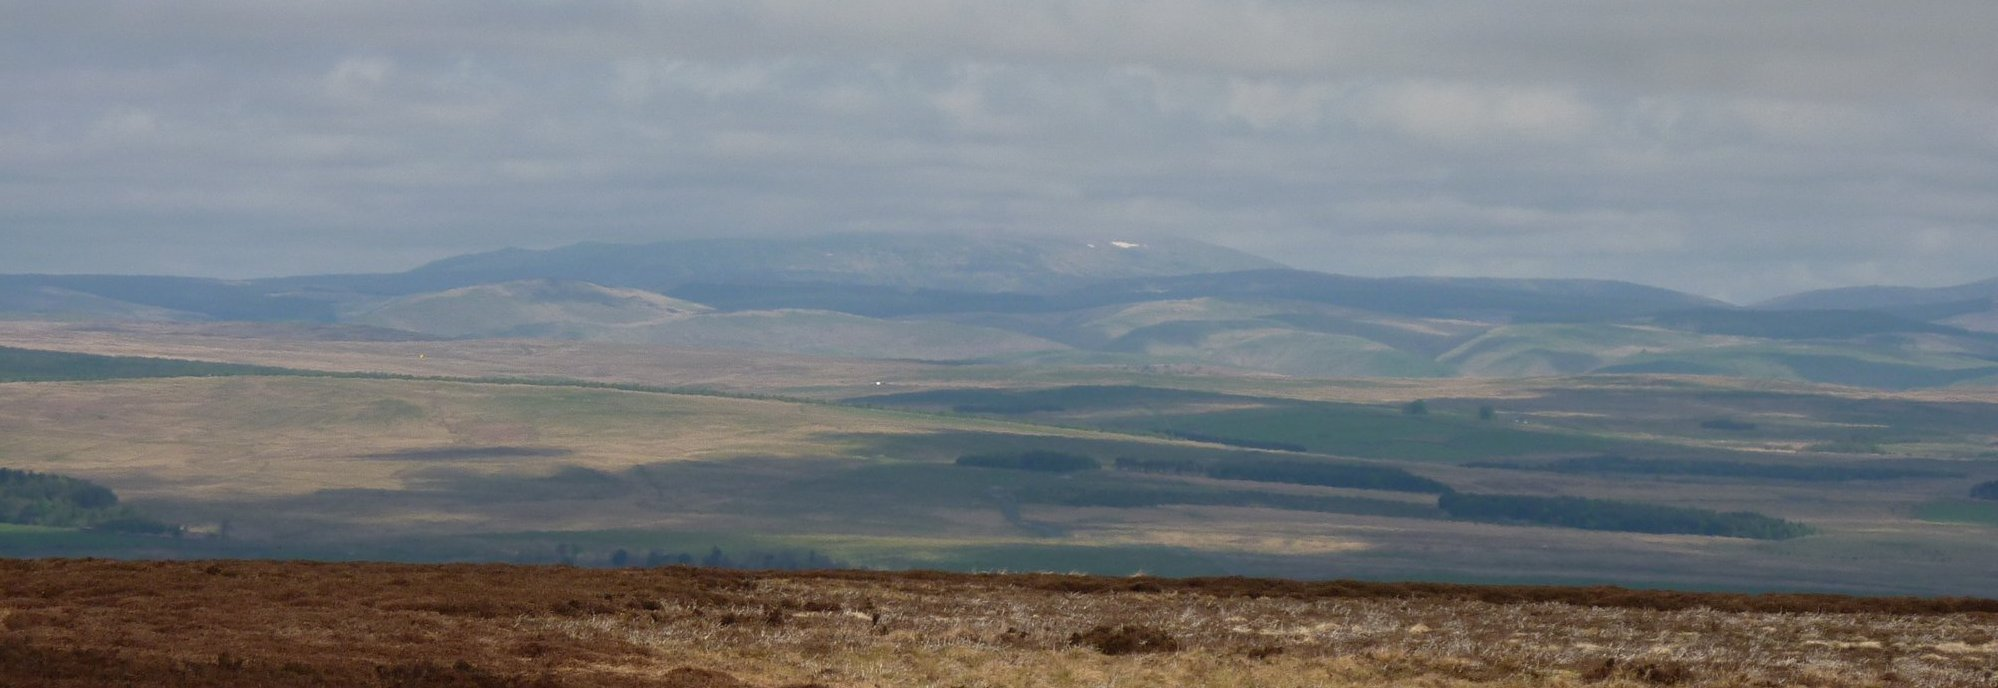 30 miles walking distant - The Cheviot